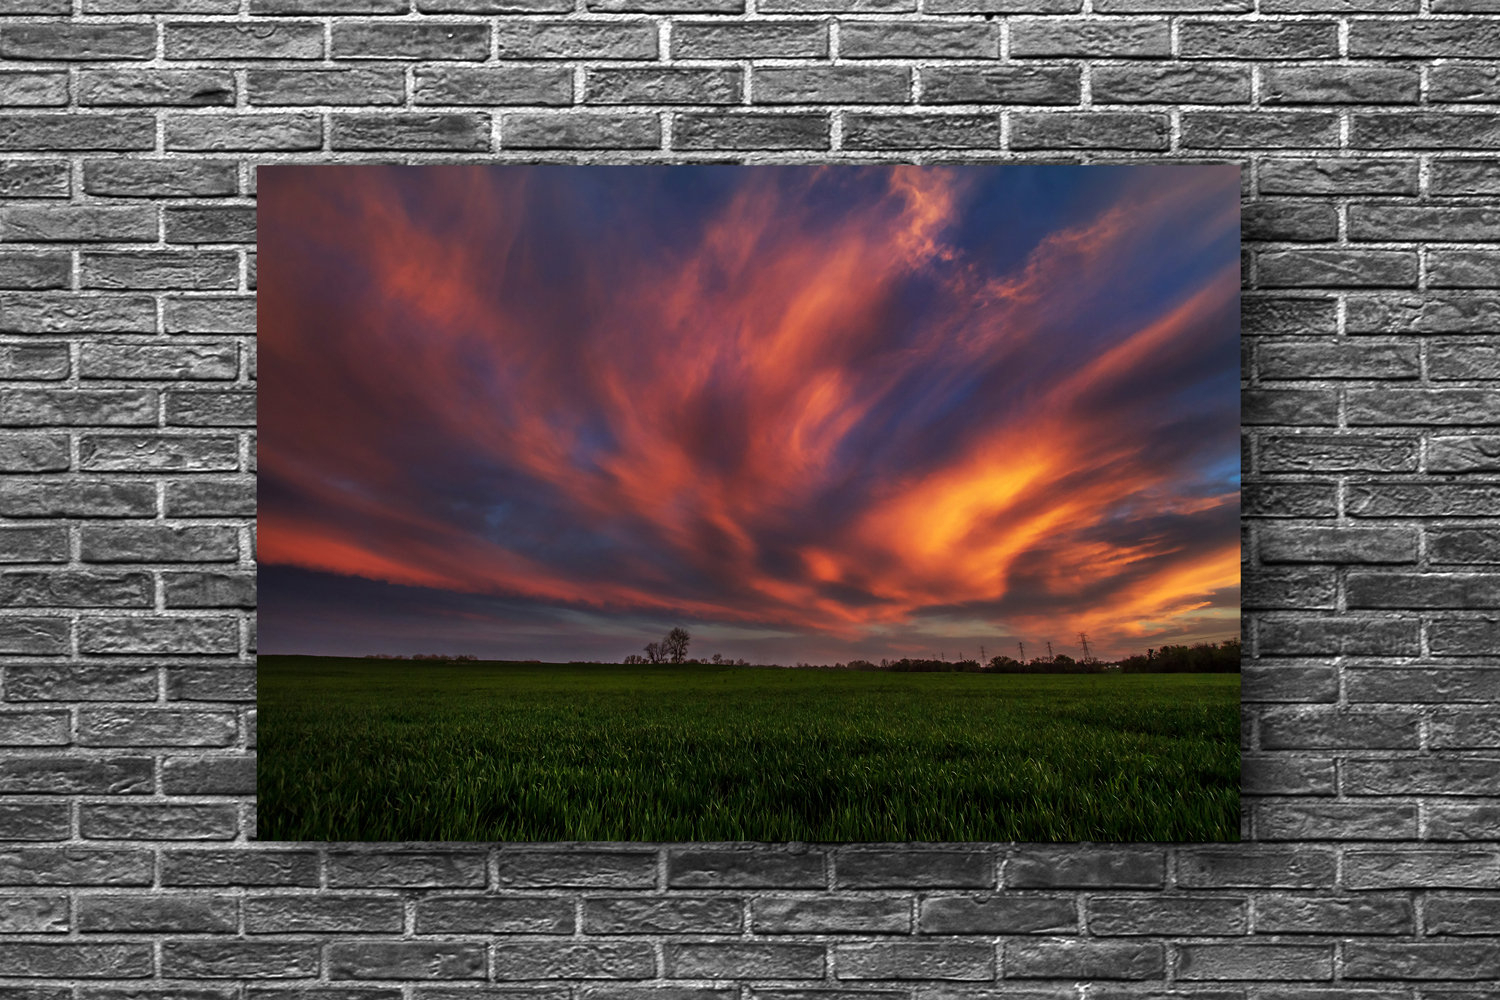 Oklahoma Wall Art Metal Print – Aluminum Photo Of Scenic Clouds Illuminated Sunset In Central Oklahoma Nature Sky Decor 8x10 To 40x60 Inside Nature Metal Sun Wall Decor (View 7 of 30)